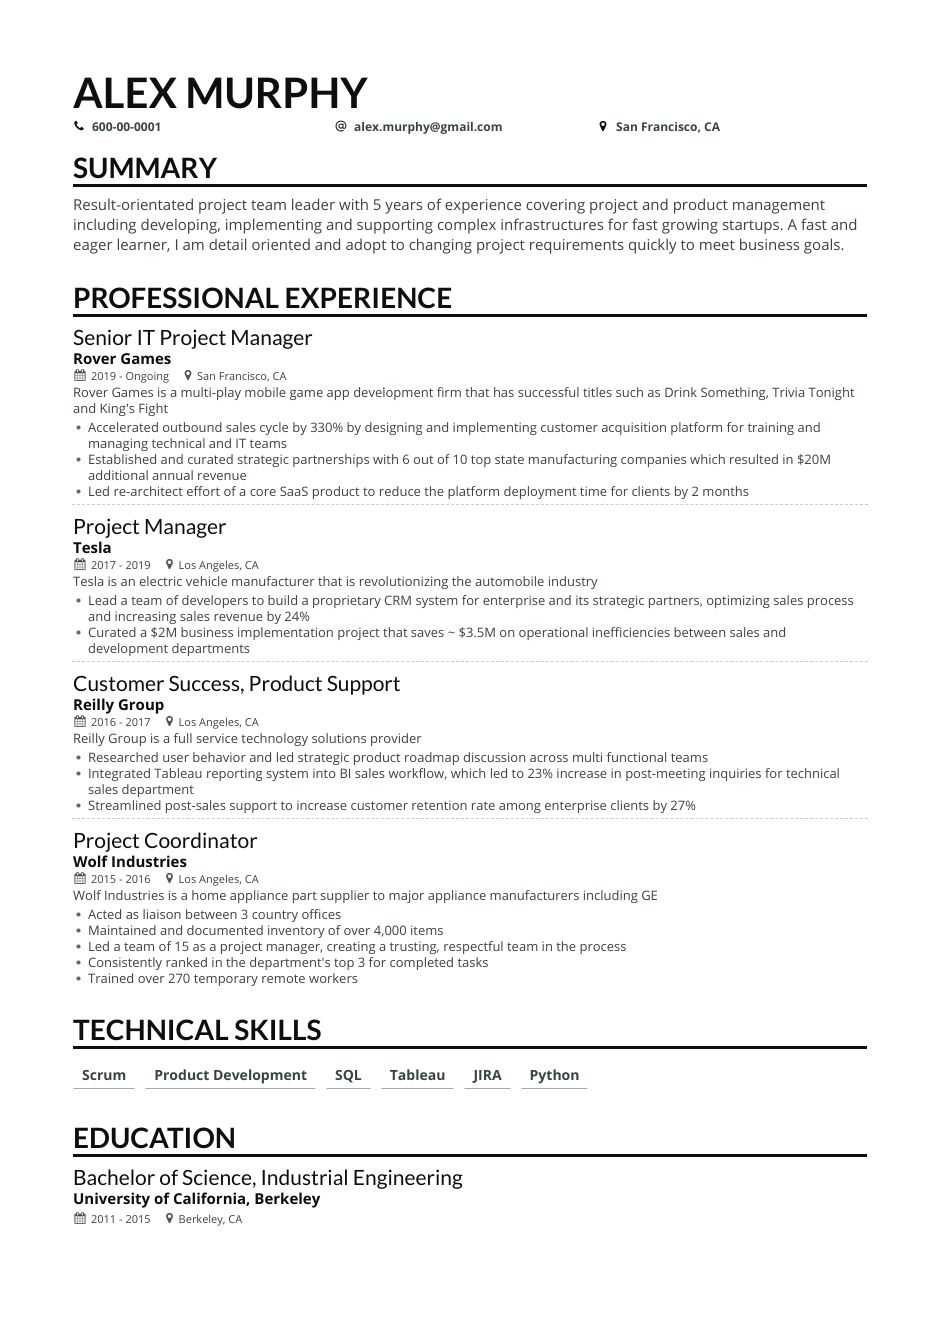 If you have worked for fewer than 3 years, write a project manager resume objective. 4 Job Winning Project Manager Resume Examples In 2021